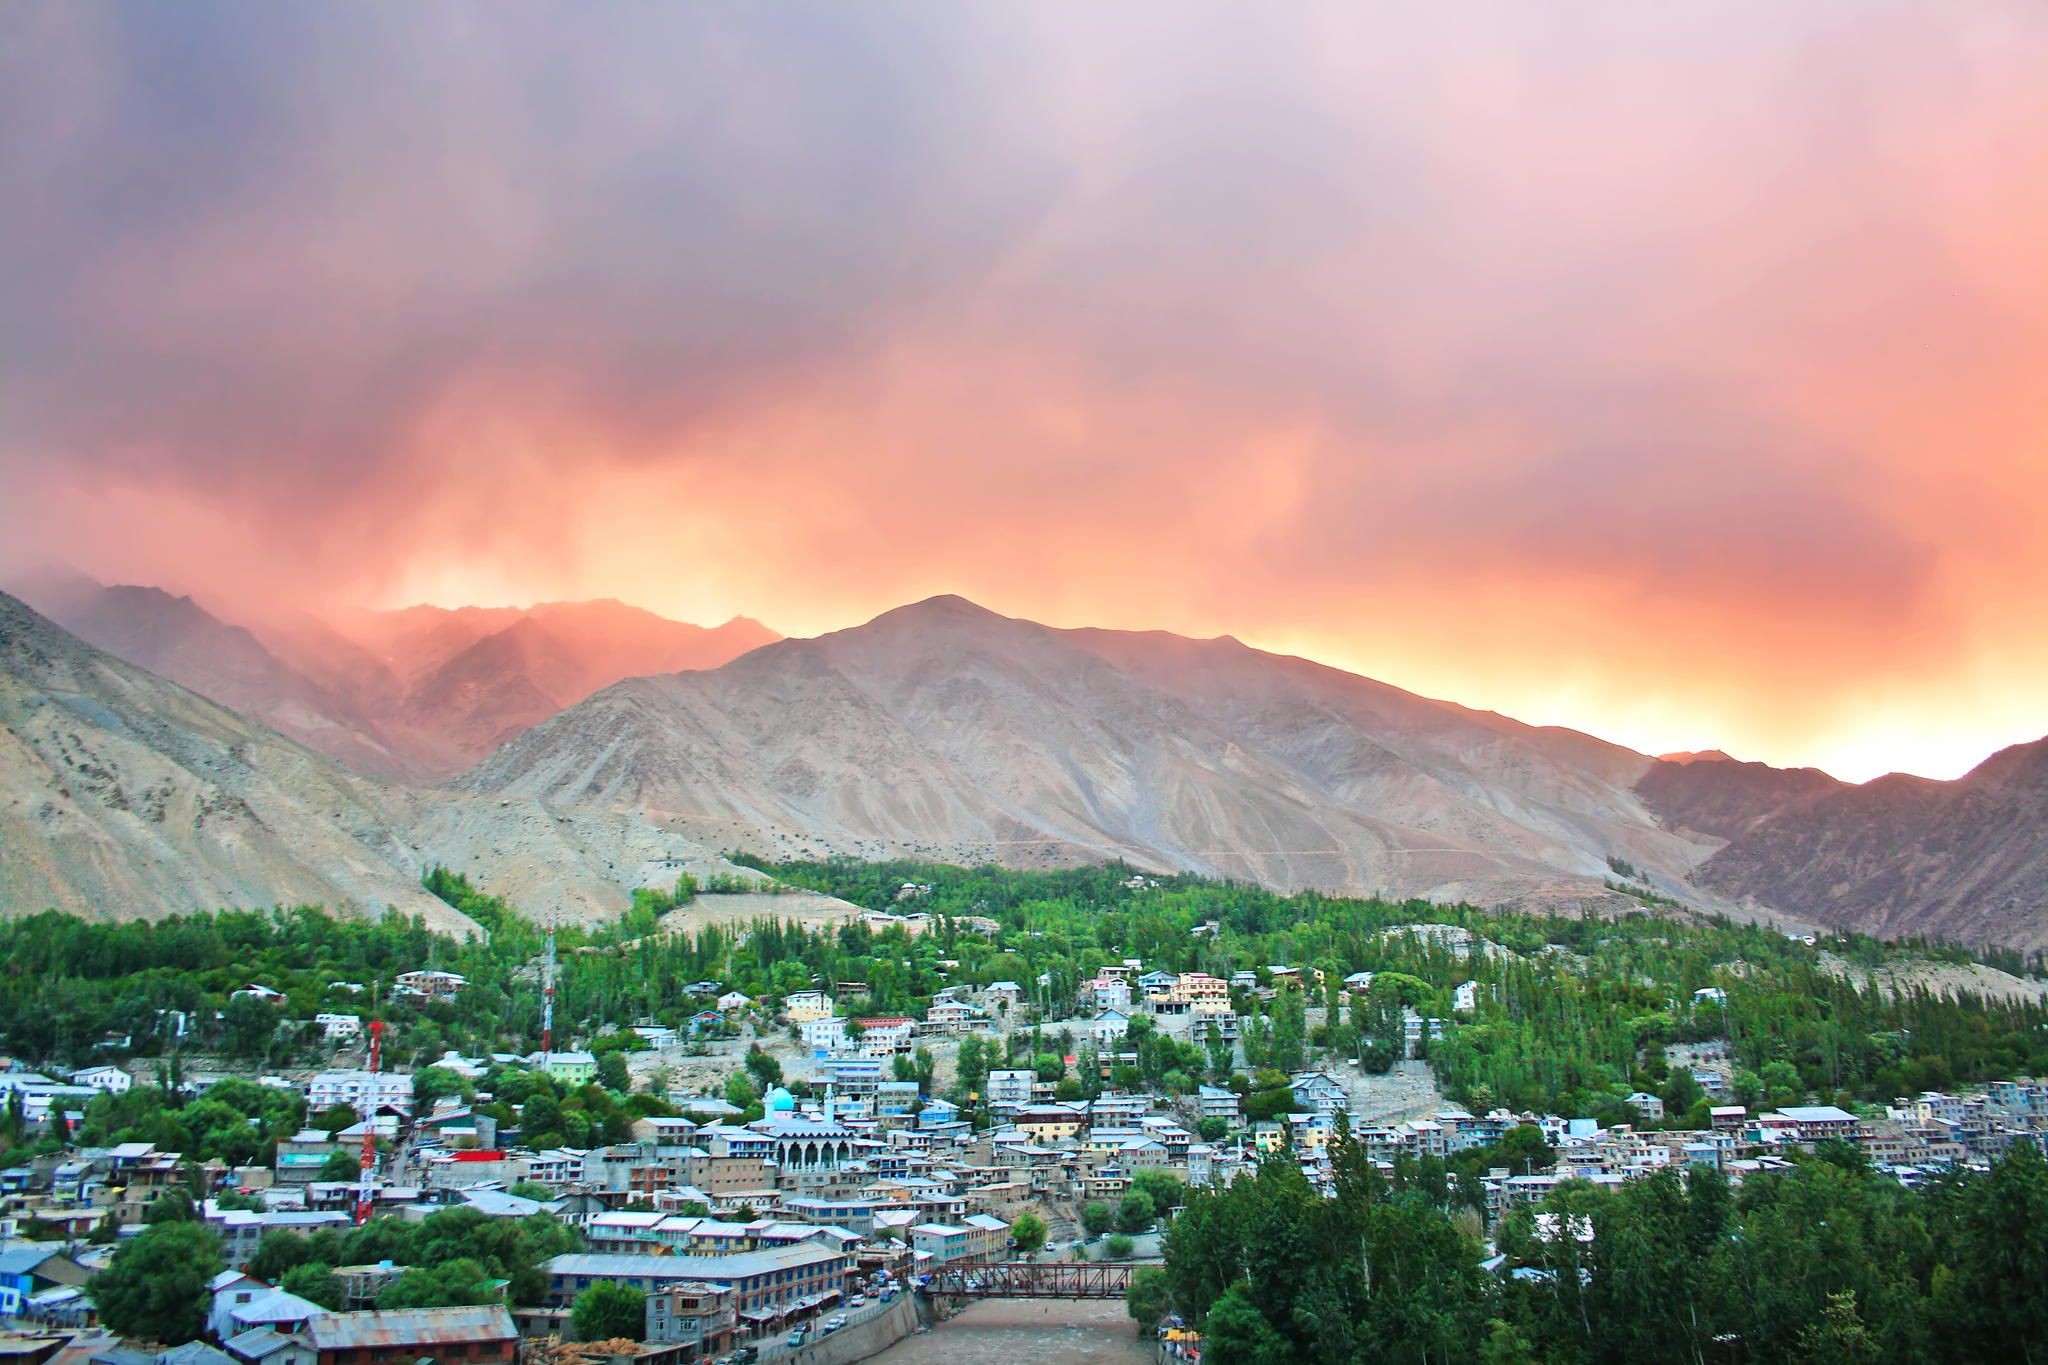 Fire in the mountain by Dheeraj Tripathi on 500px